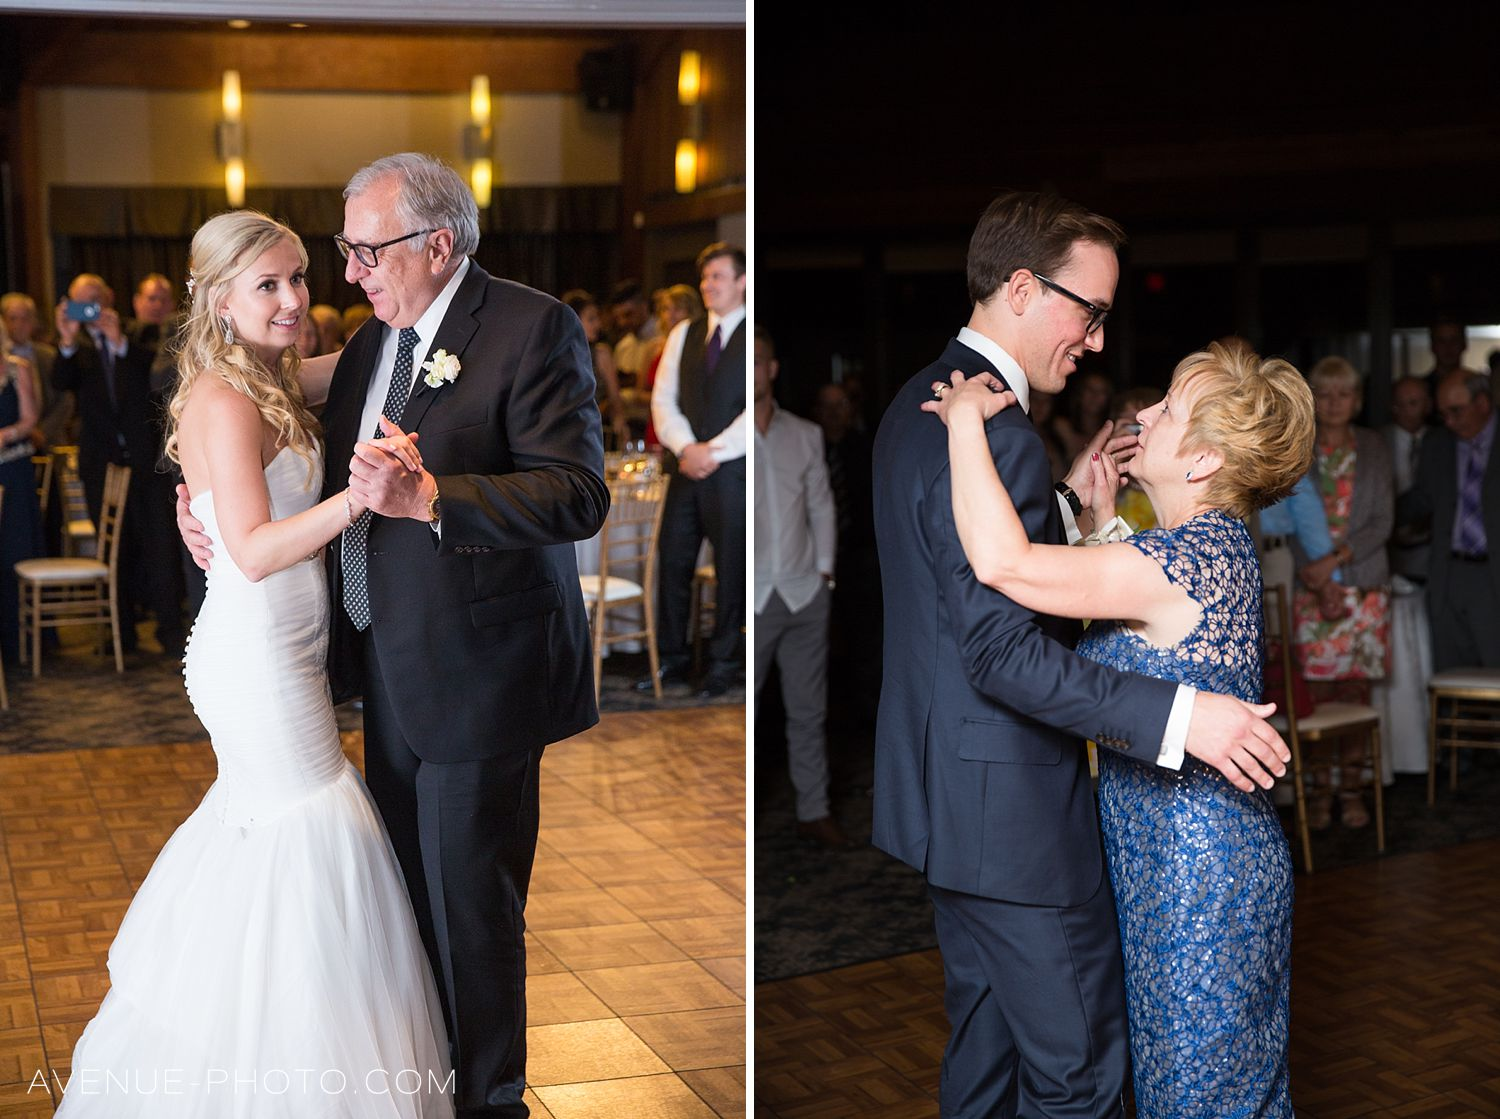 Credit Valley Golf Club Wedding Photos / Avenue Photo